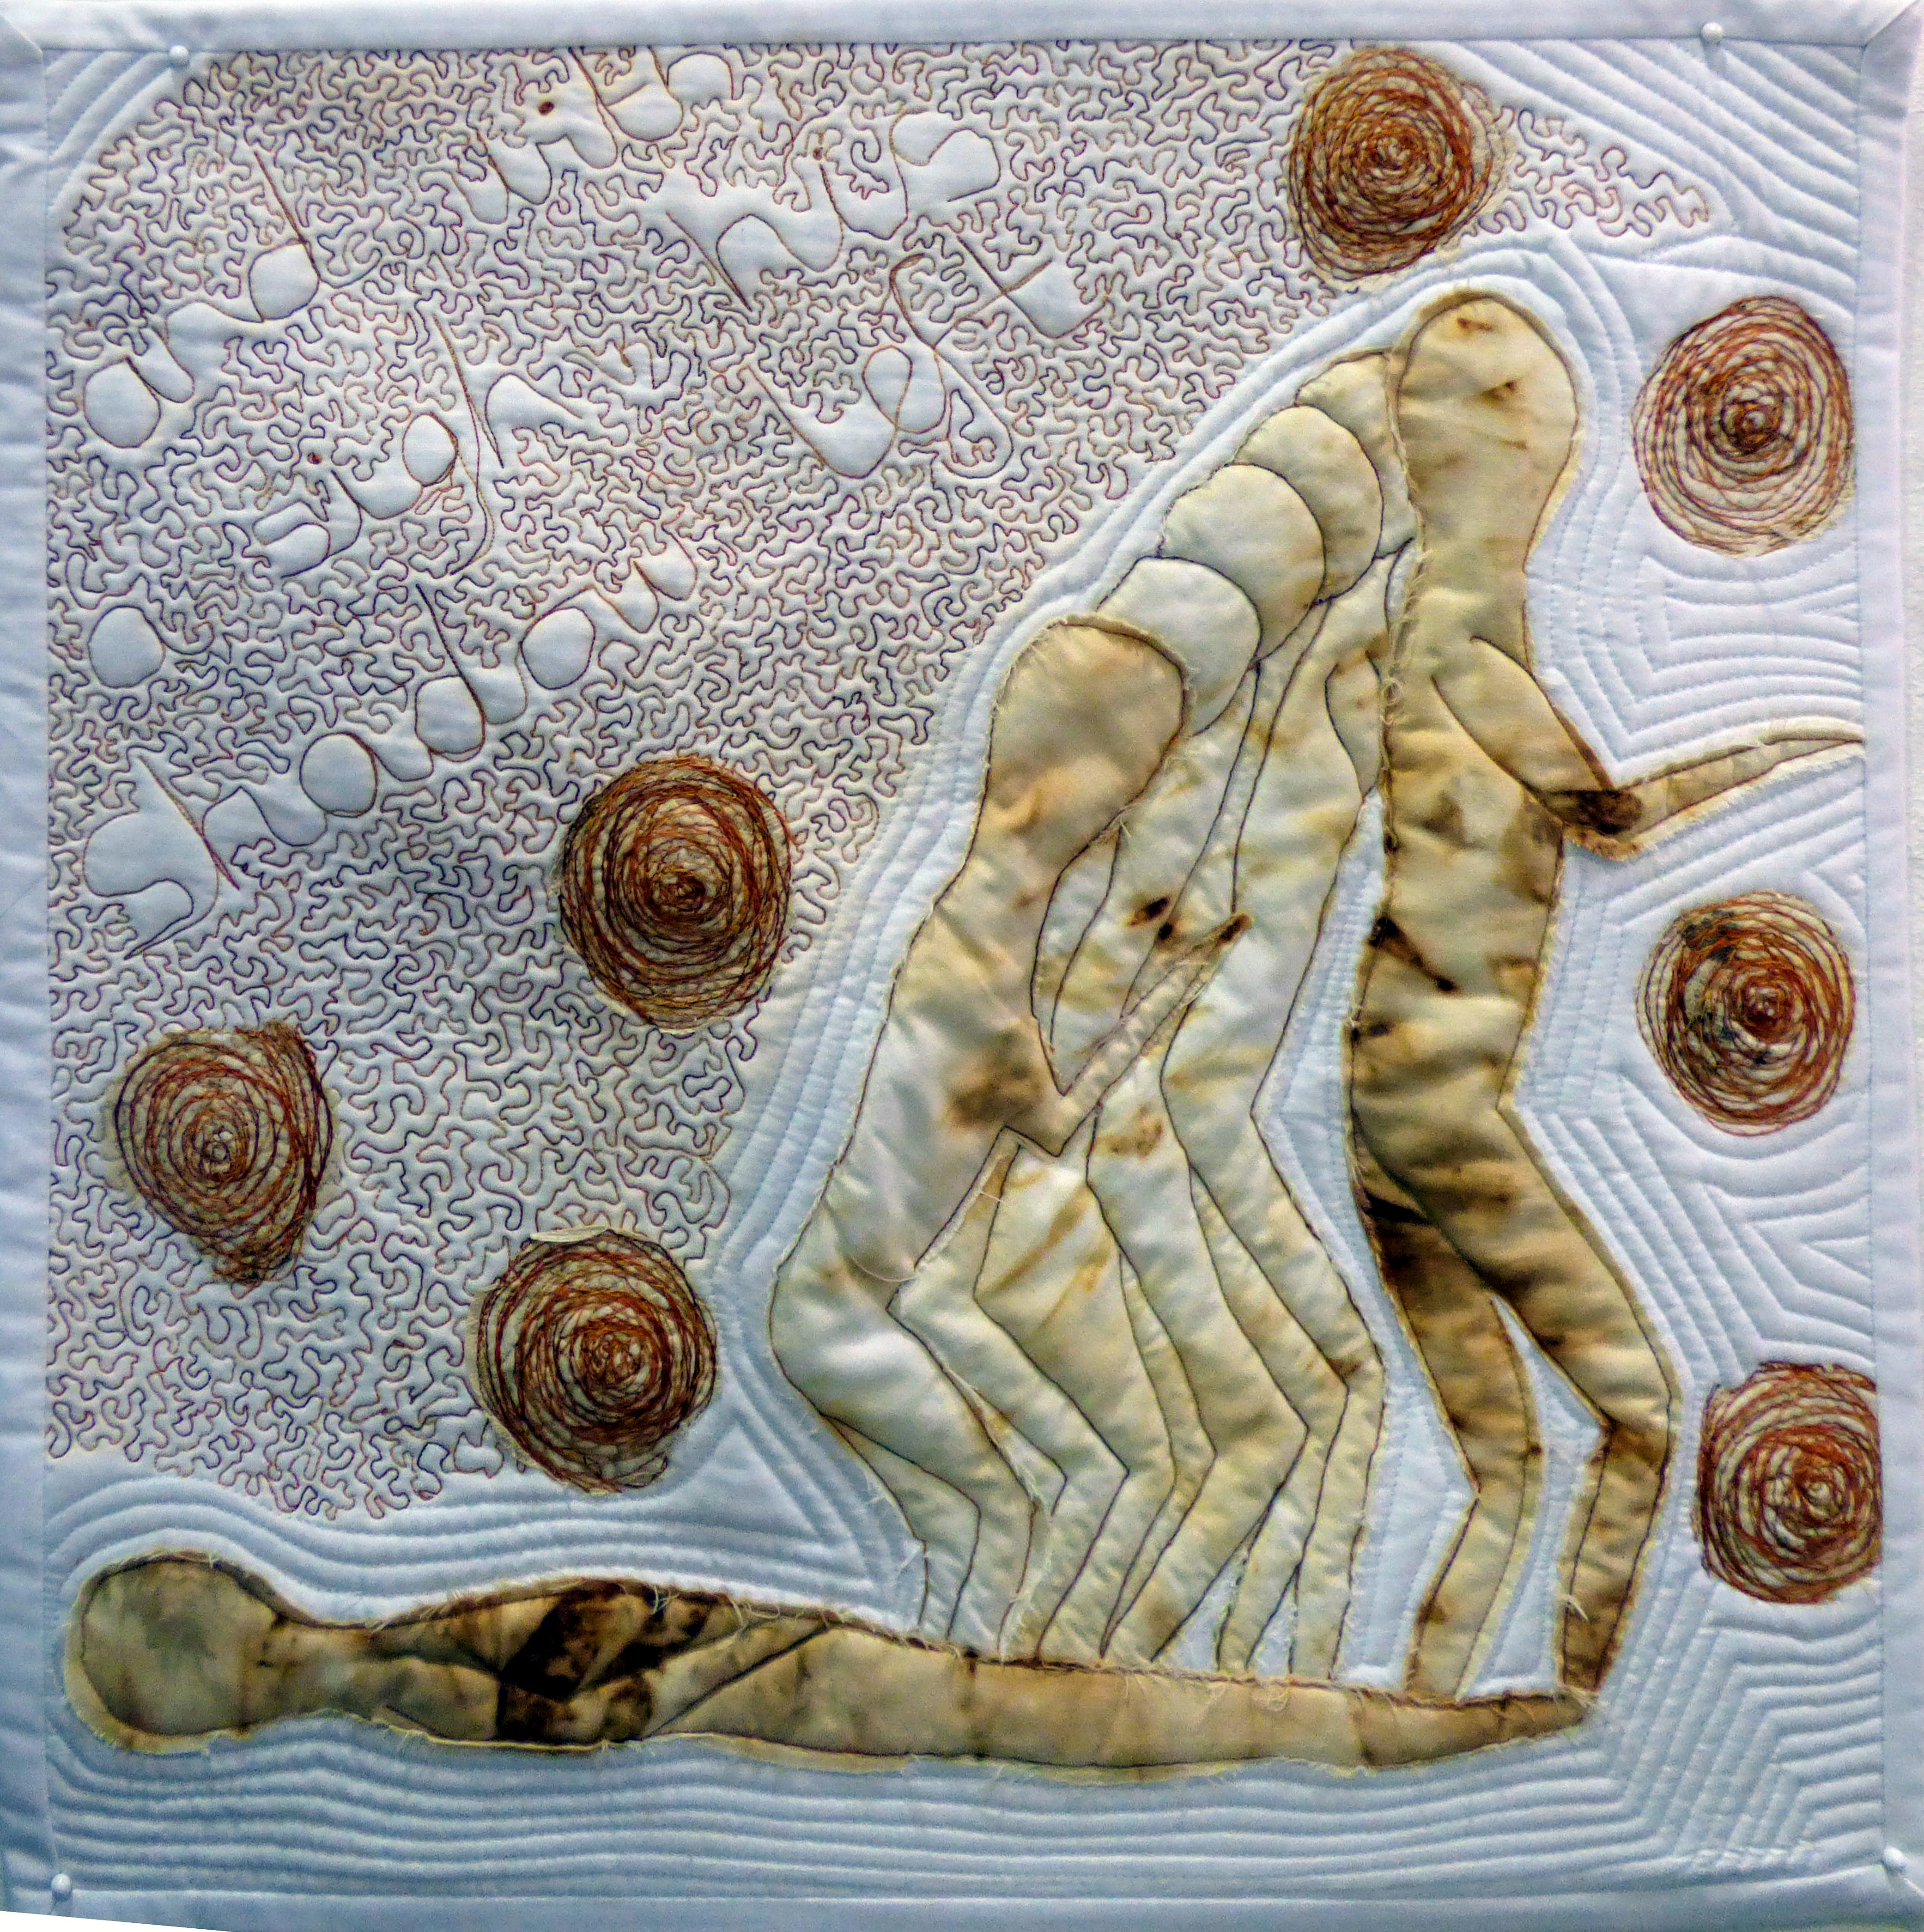 """DEMENTIA 1 """"AND WITH A SIGH"""" by Melanie Baugh, N.Wales EG, rust dyed fabric with applique quilting"""